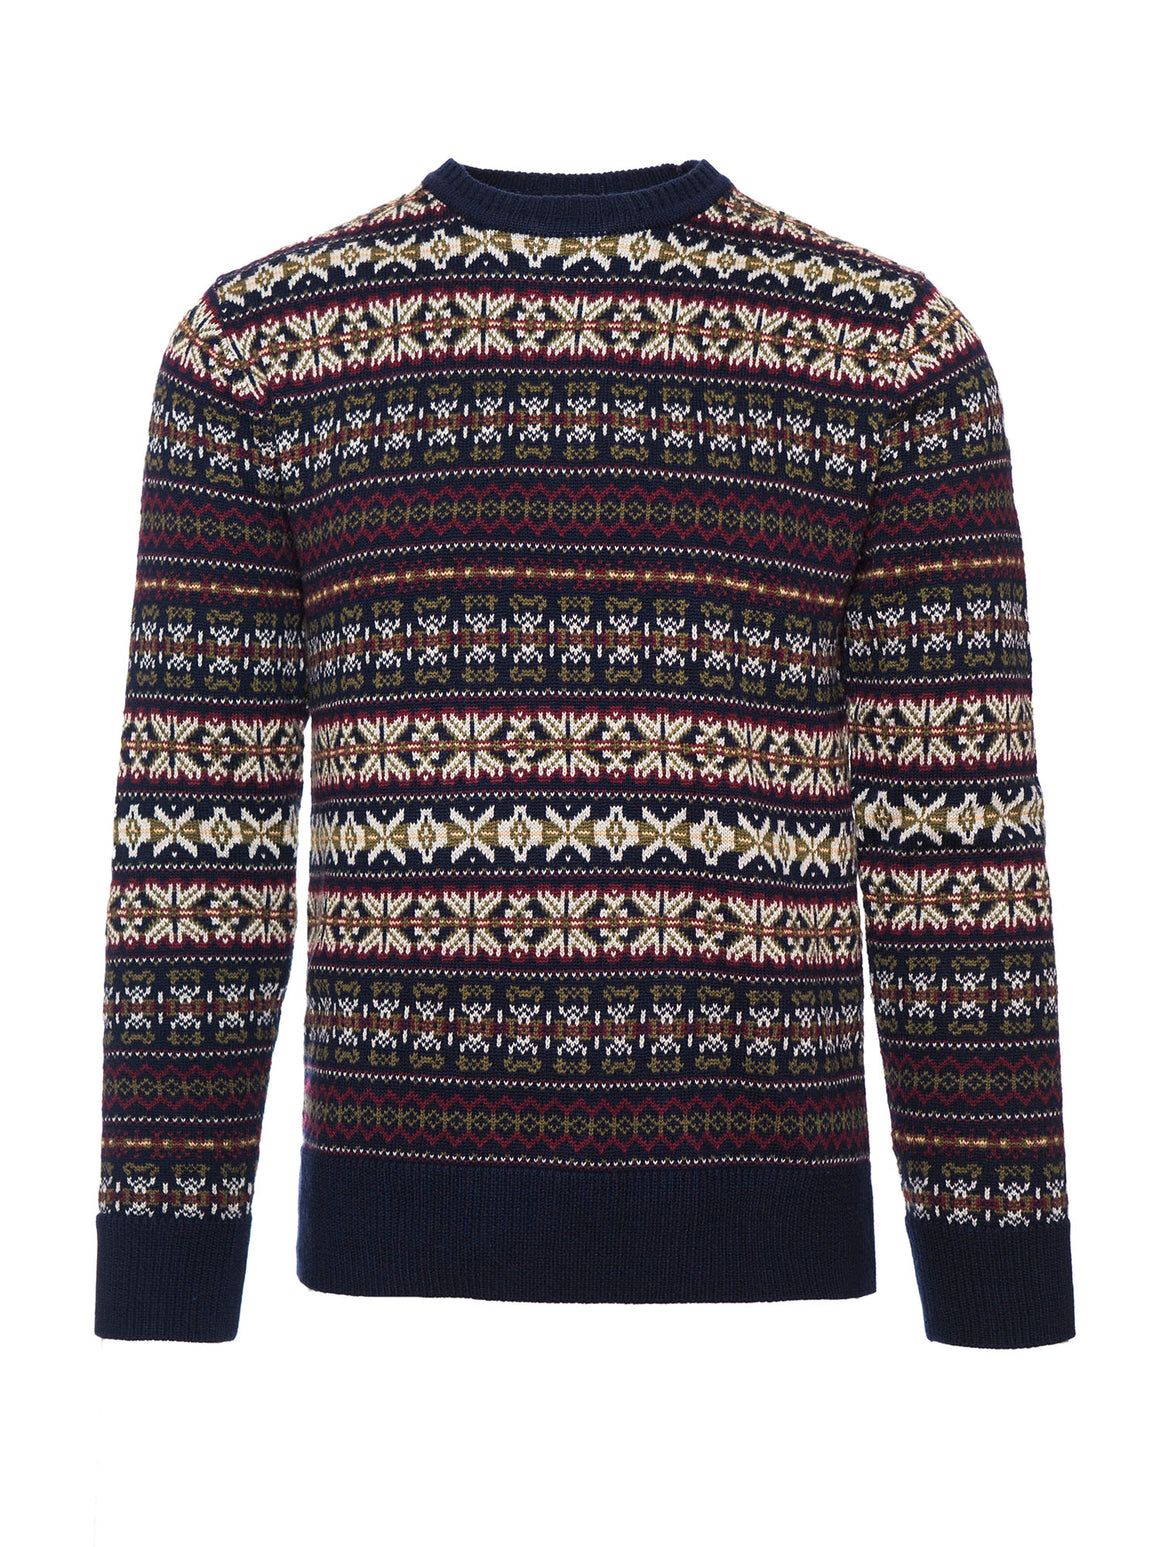 Jacquard Crewneck Sweater - Navy Multi